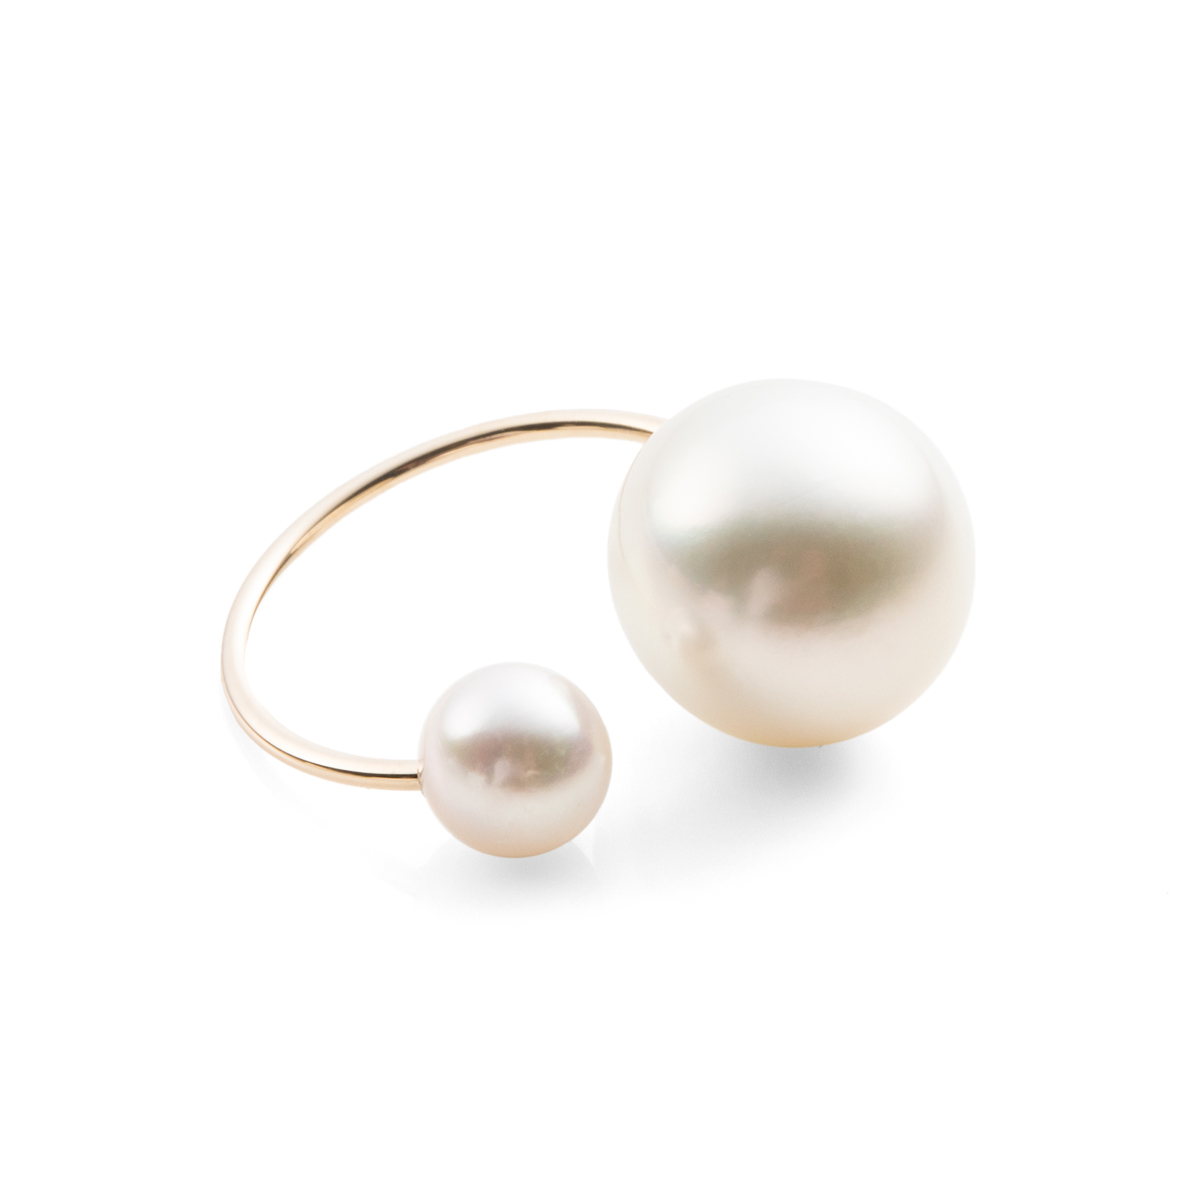 South Sea Pearl Ear Cuff PE06KPF イヤーカフ イヤカフ パール アコヤパール 南洋パール ギフト